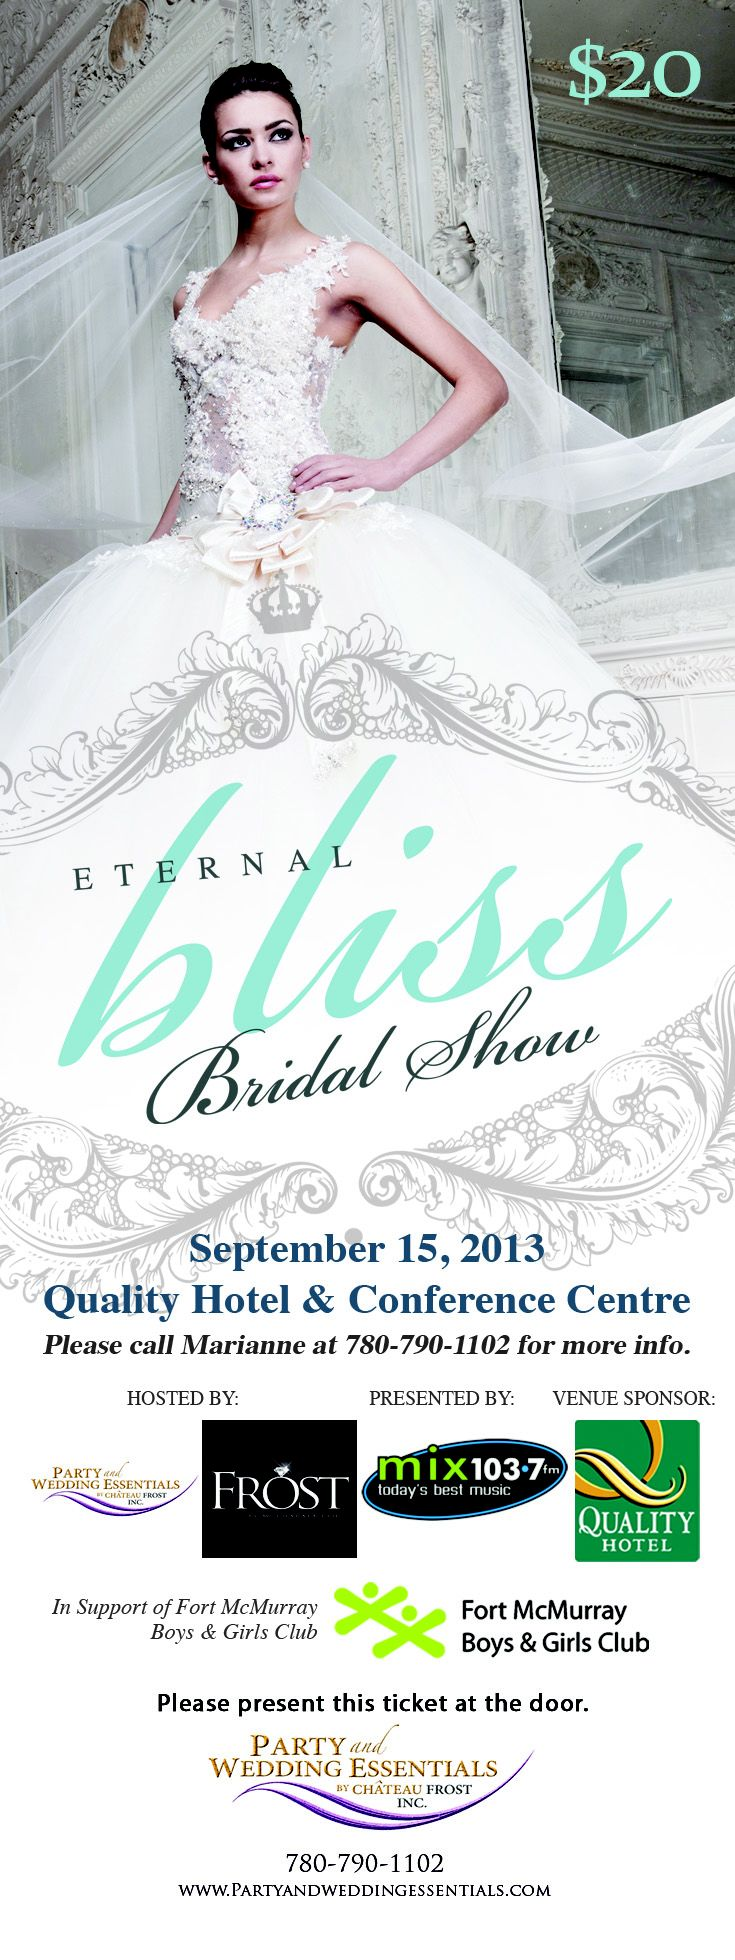 September 15, 2013 1:00 pm to 6:00 pm ETERNAL BLISS - Fall Bridal Show at the Quality Hotel & Conference Centre $ 20 a ticket Party & Wedding Essentials by Chateau Frost Inc. would like you to be a part of this momentous event. This is an opportunity for businesses to showcase and offer their products and services to would be clients.   We are looking for more Vendors and Sponsors to this great event. If interested please contact Marianne at 780-790-1102.  thank you!